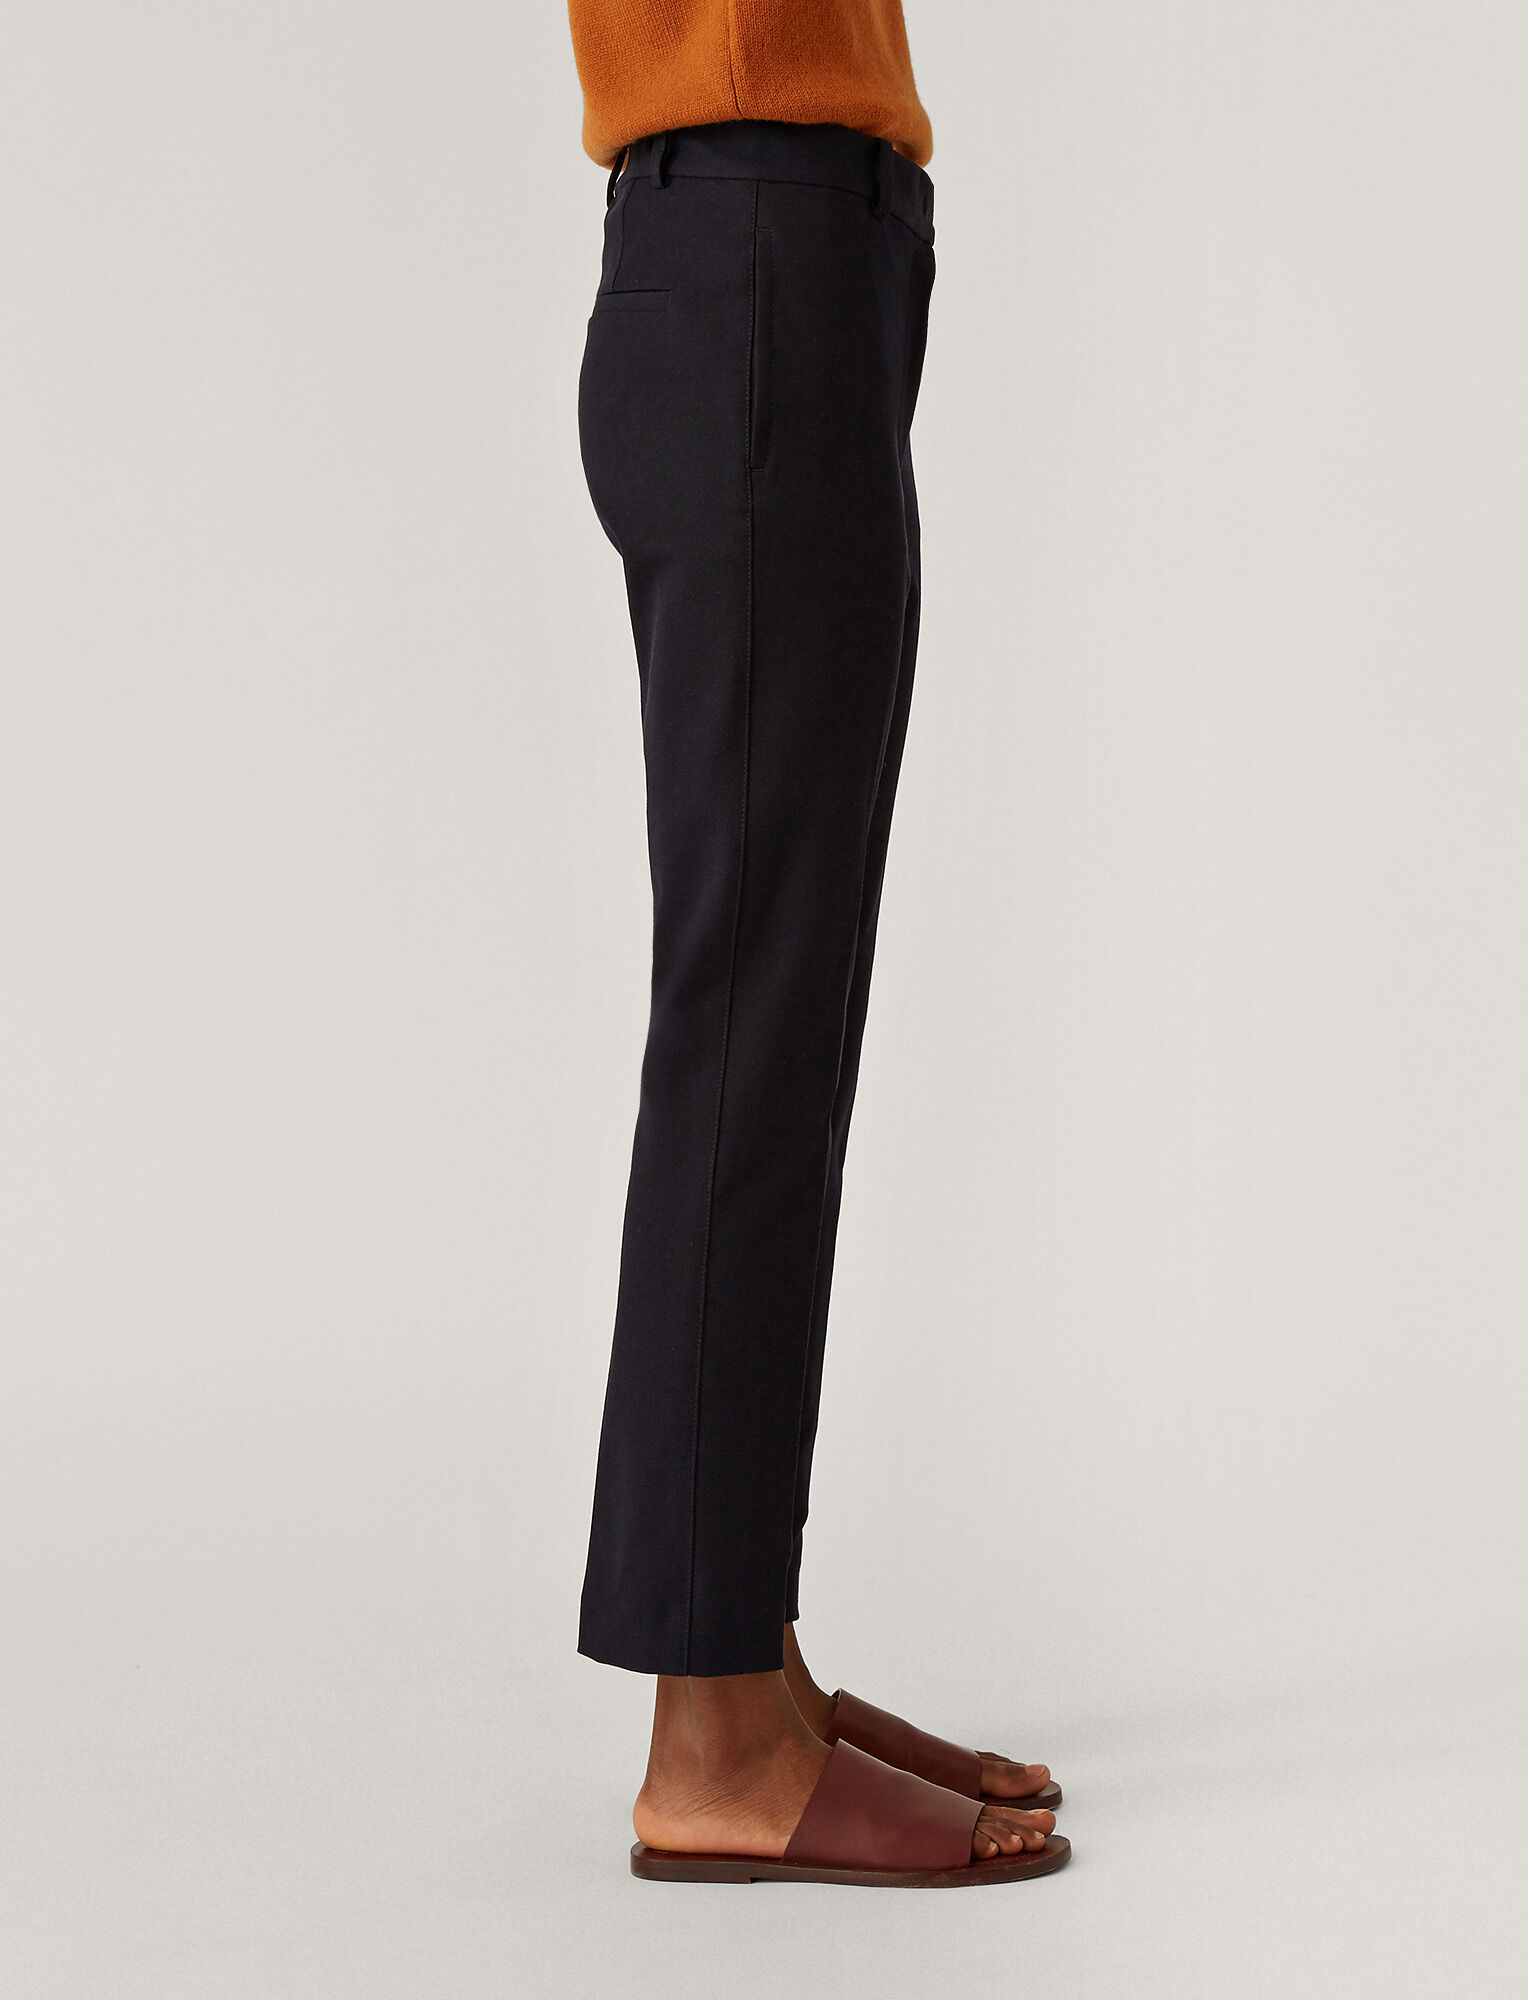 Joseph, Zoom Gabardine Stretch Trousers, in NAVY